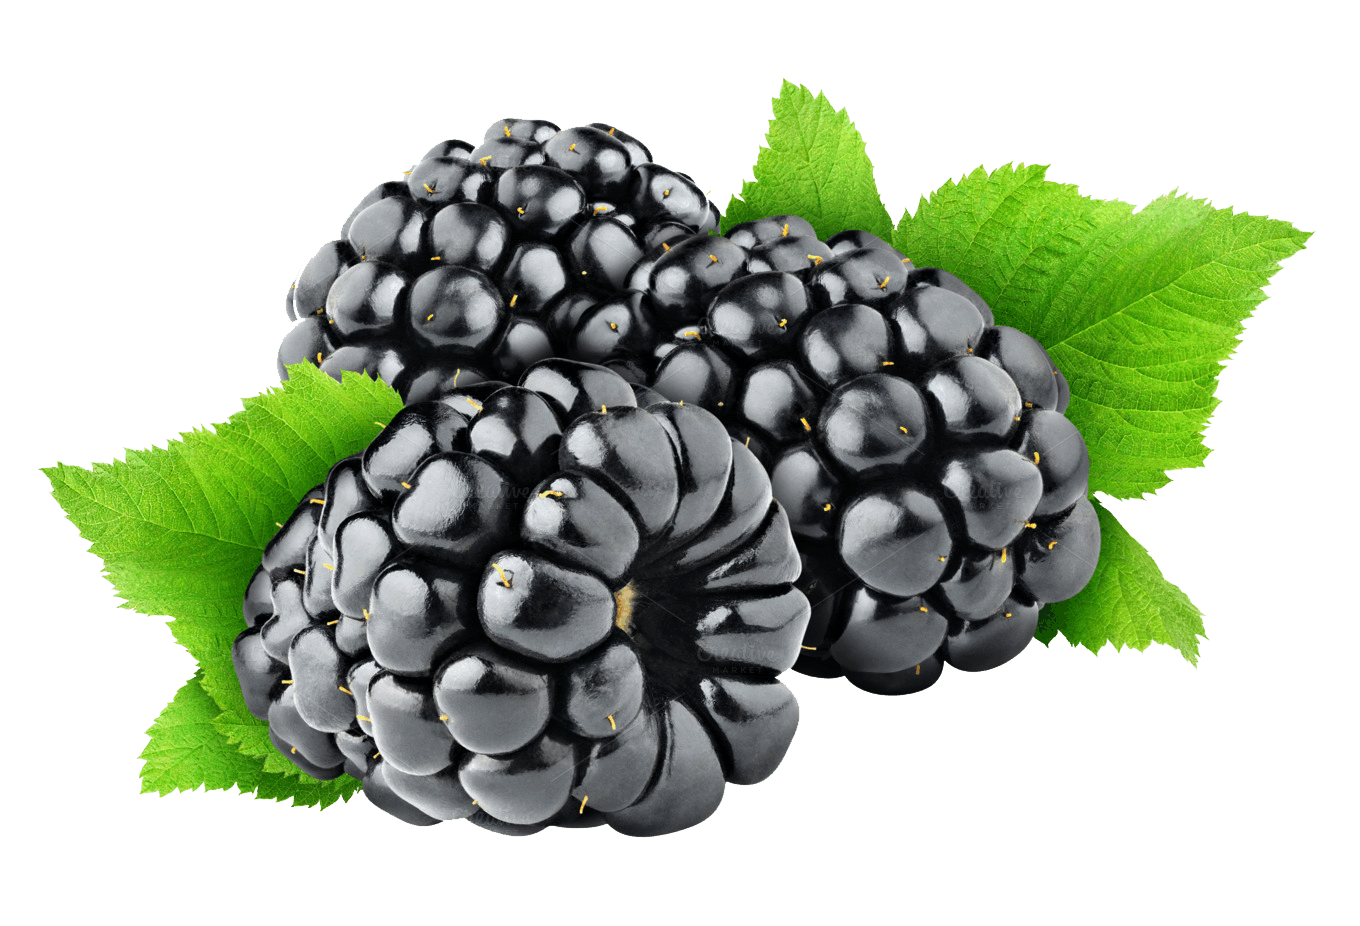 graphic black and white download Png . Blackberry drawing juicy